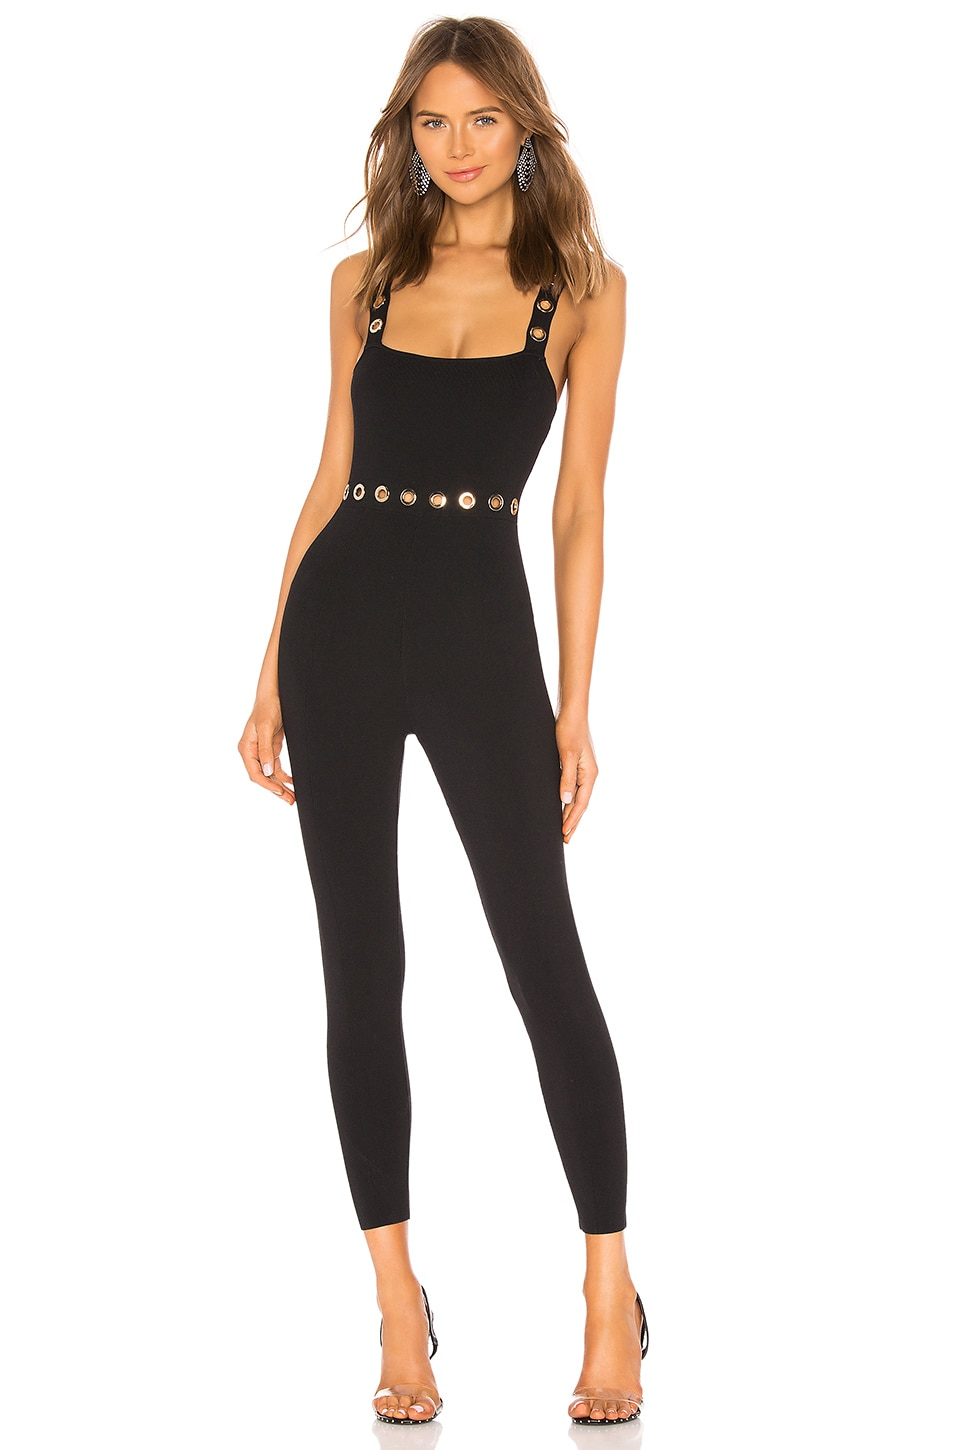 NBD x Naven Jocelyn Bandage Jumpsuit in Black